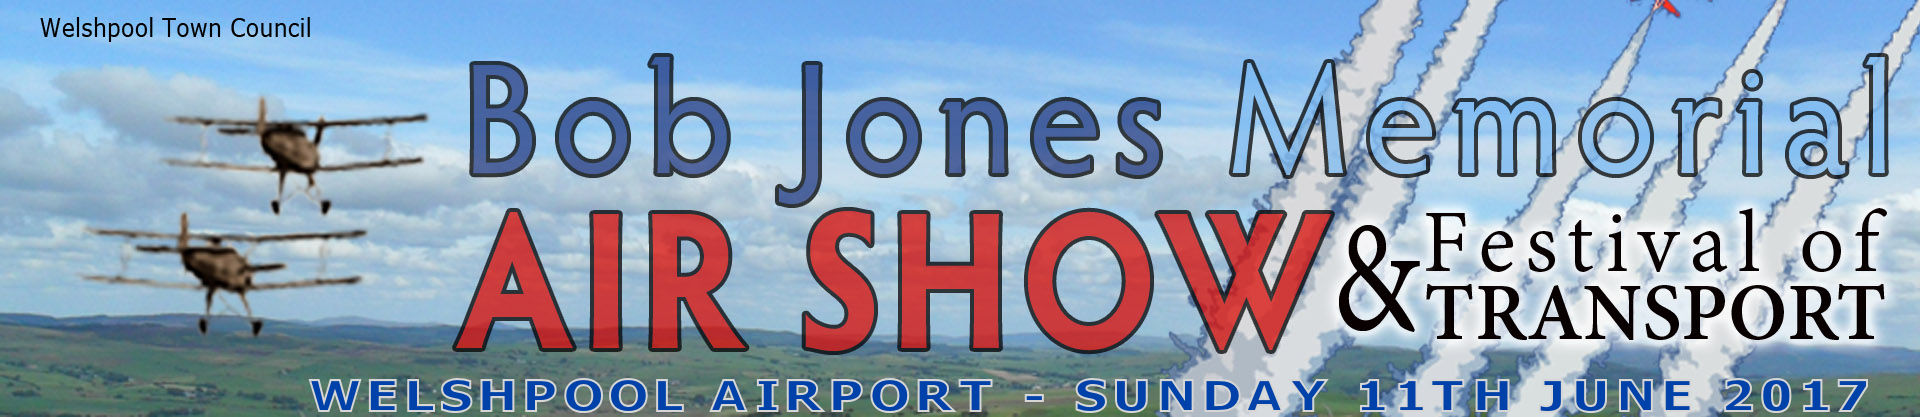 AIRSHOW NEWS: Welshpool Airshow – 11th June – a date for your diary!